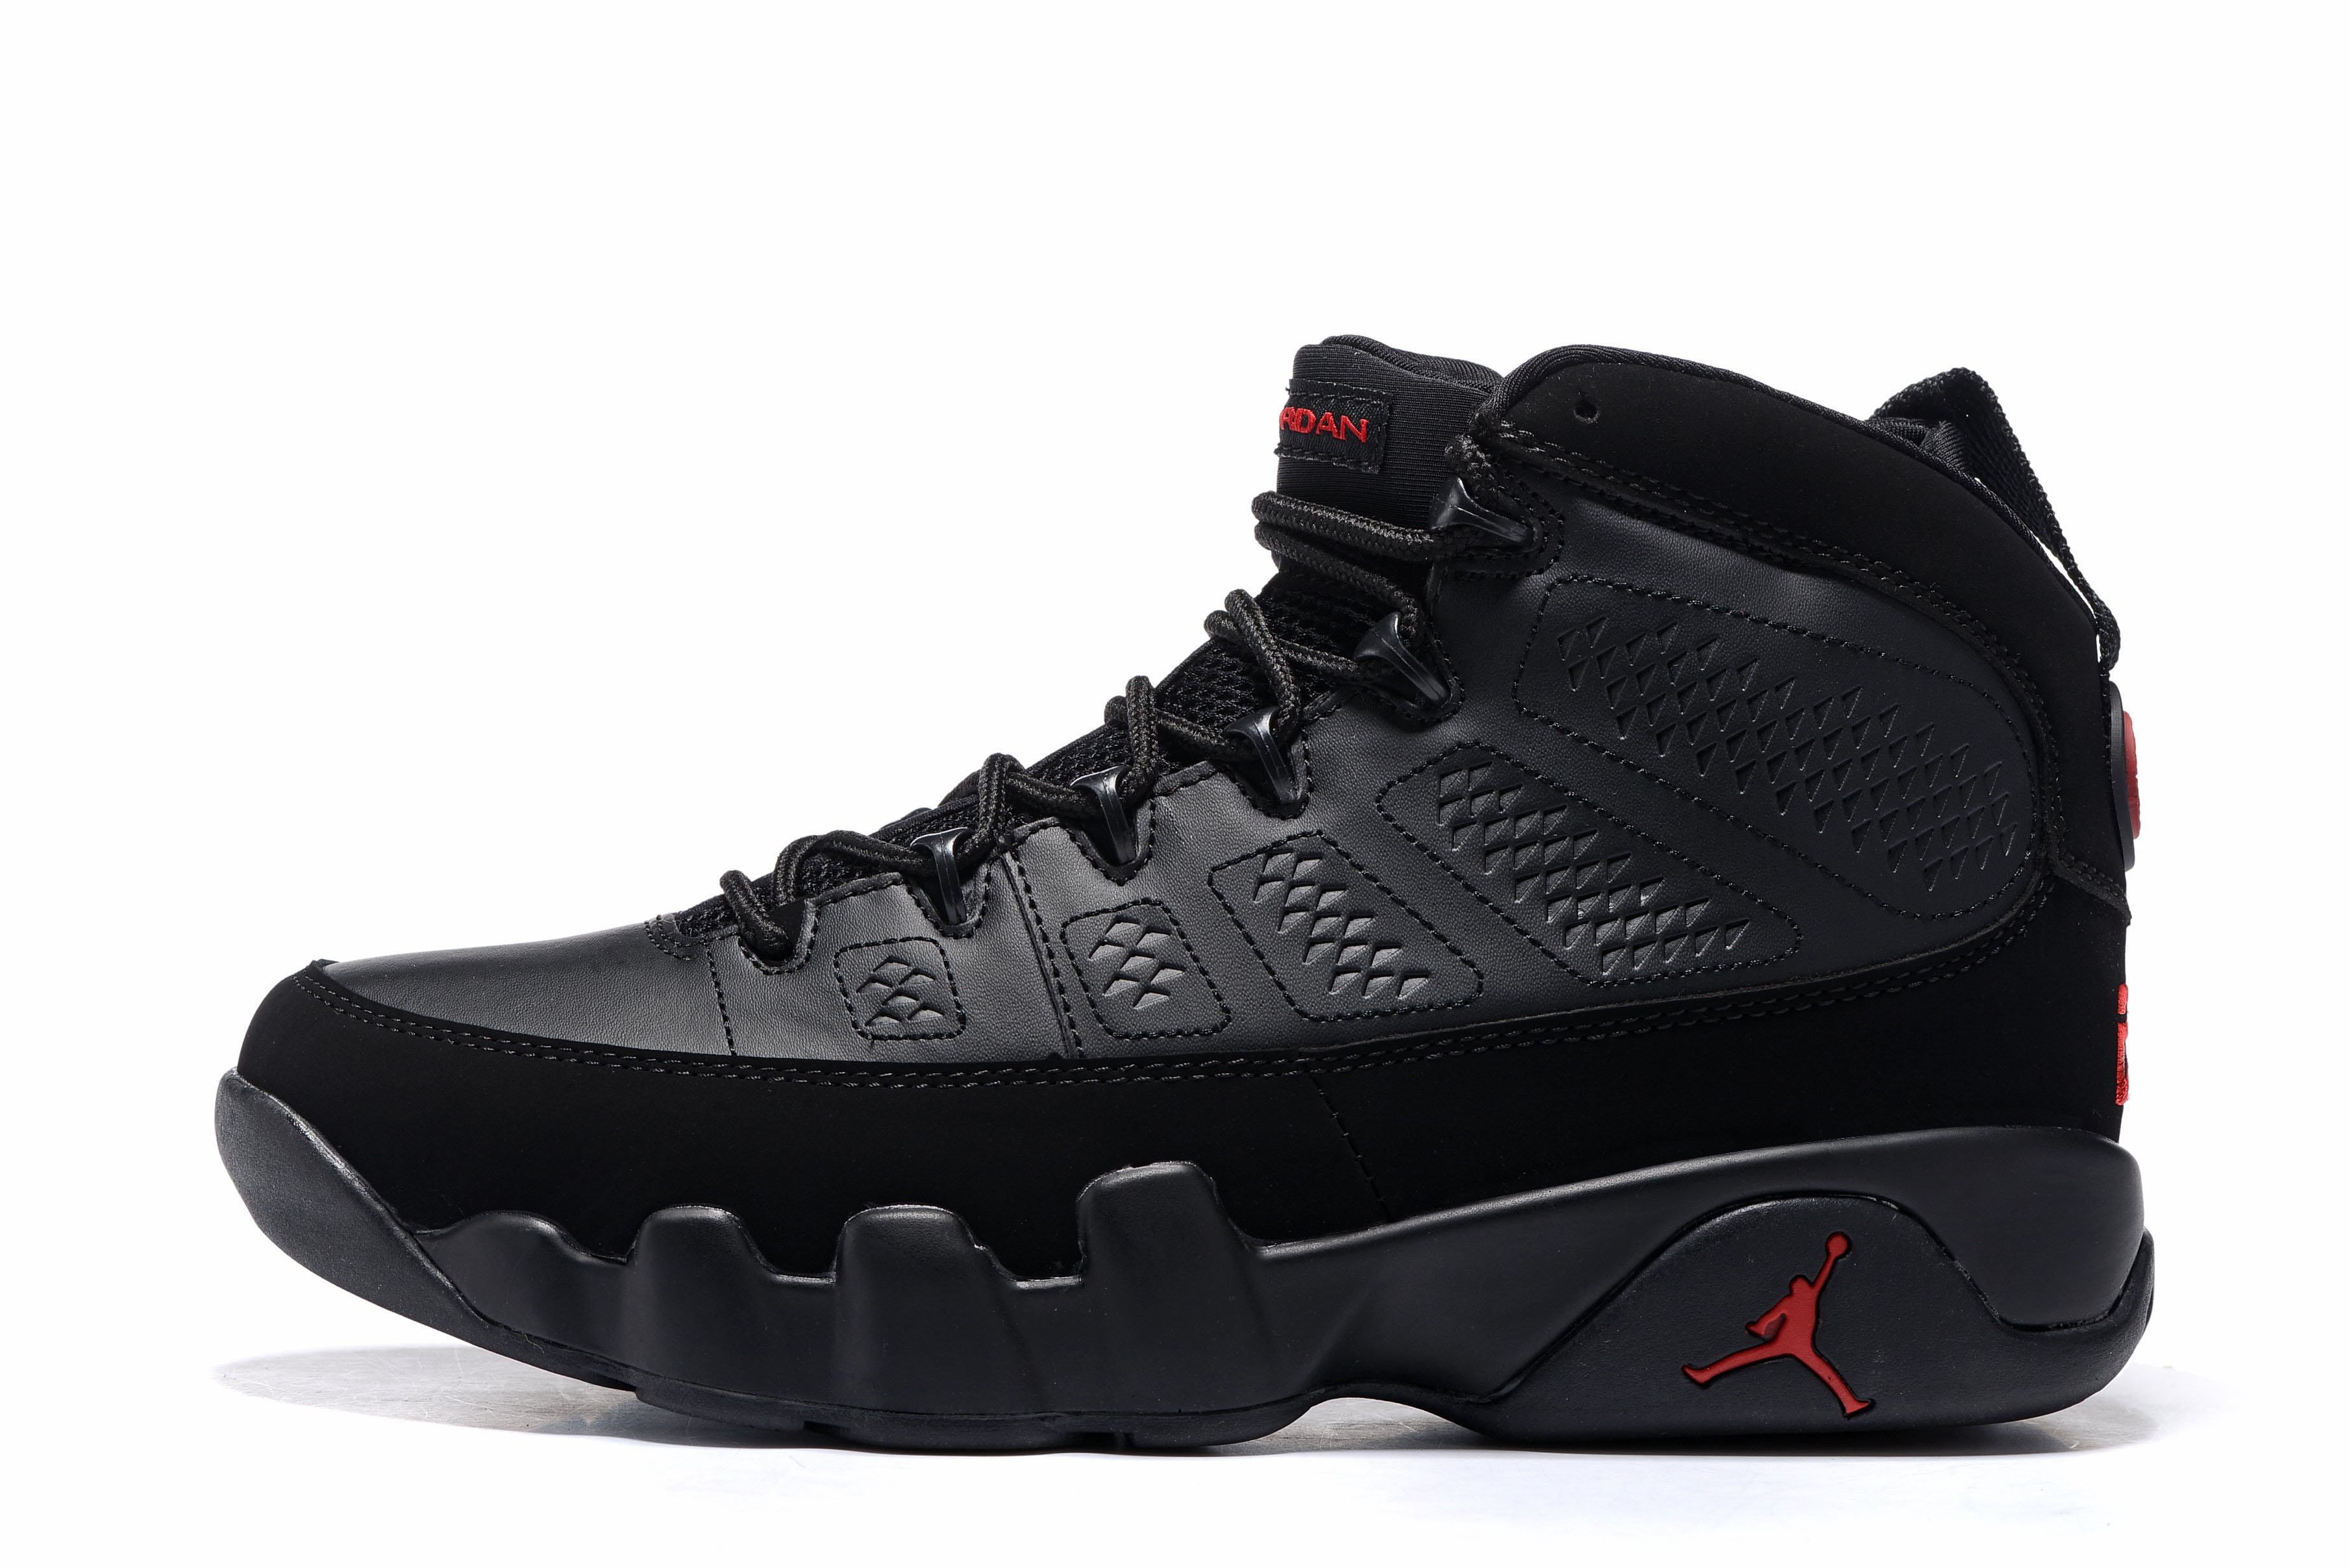 Air Jordan 9 Bred Black/Anthracite-University Red 302370-014